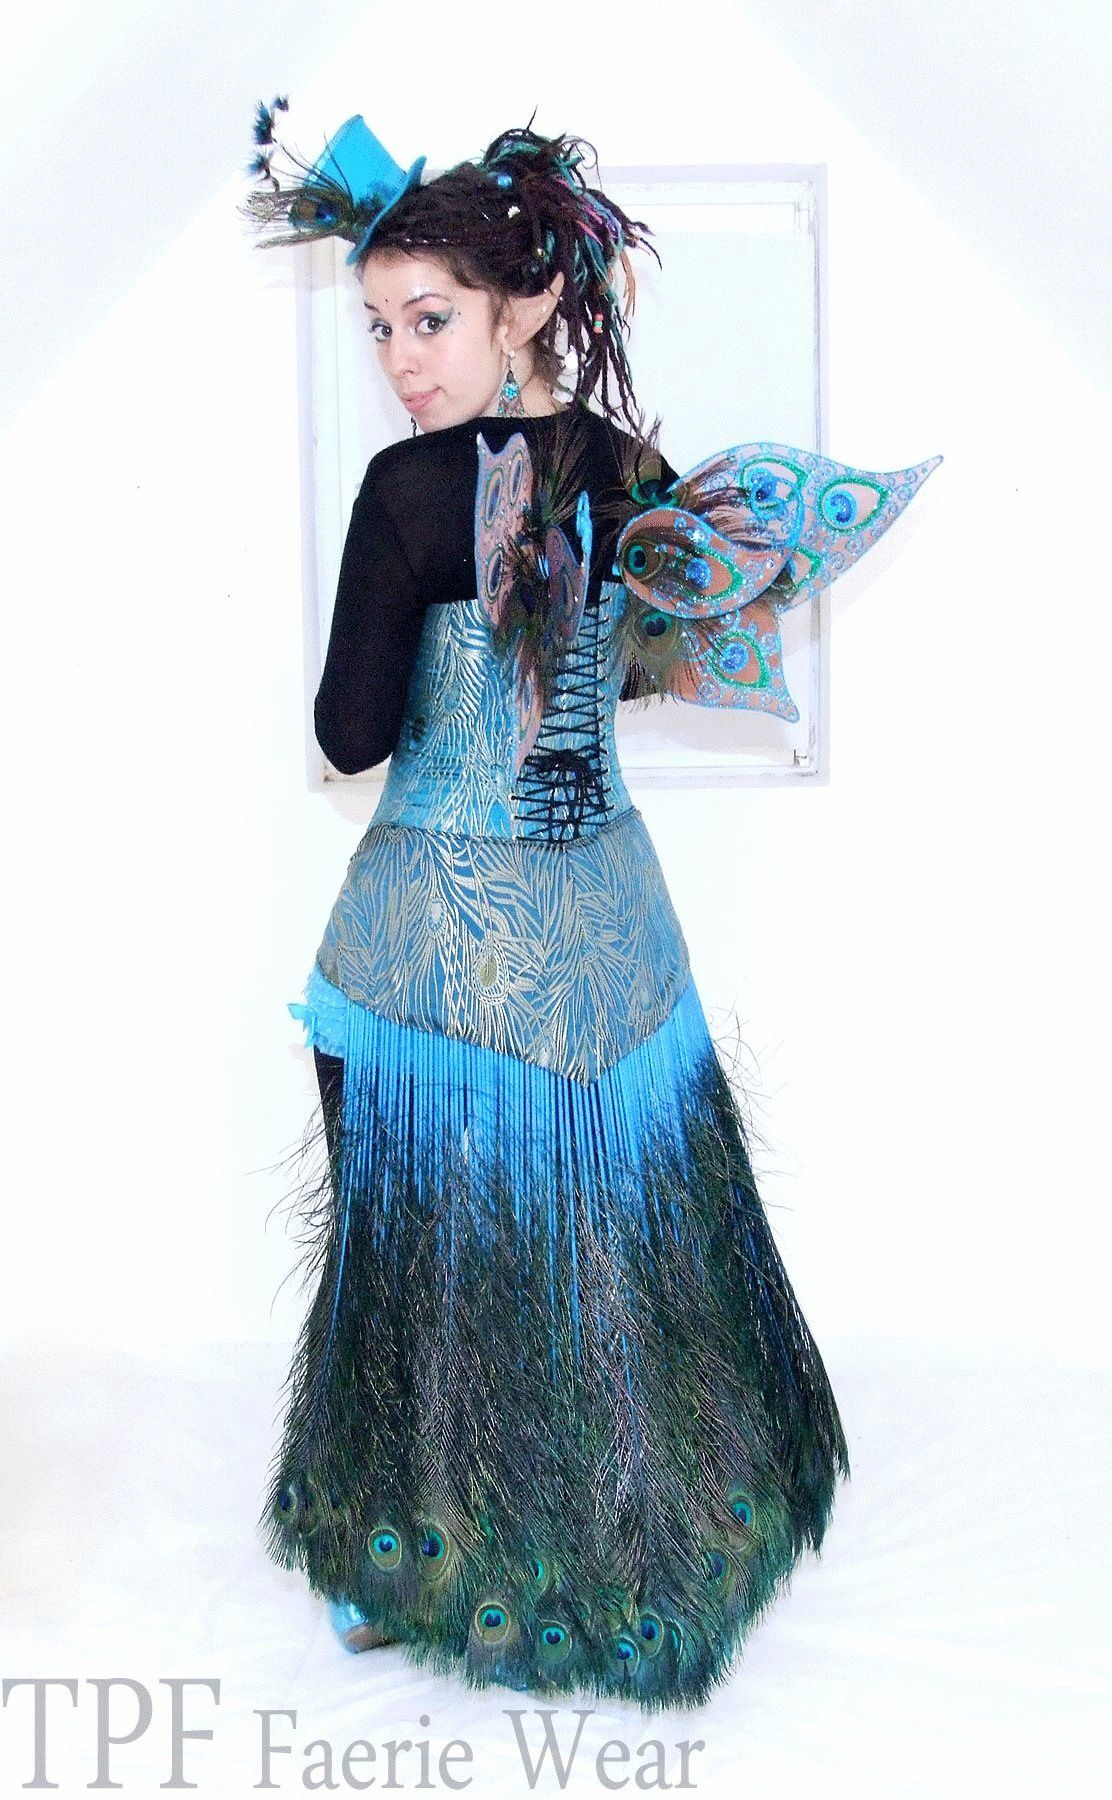 I want to do something like this, but with natural white peacock feathers.